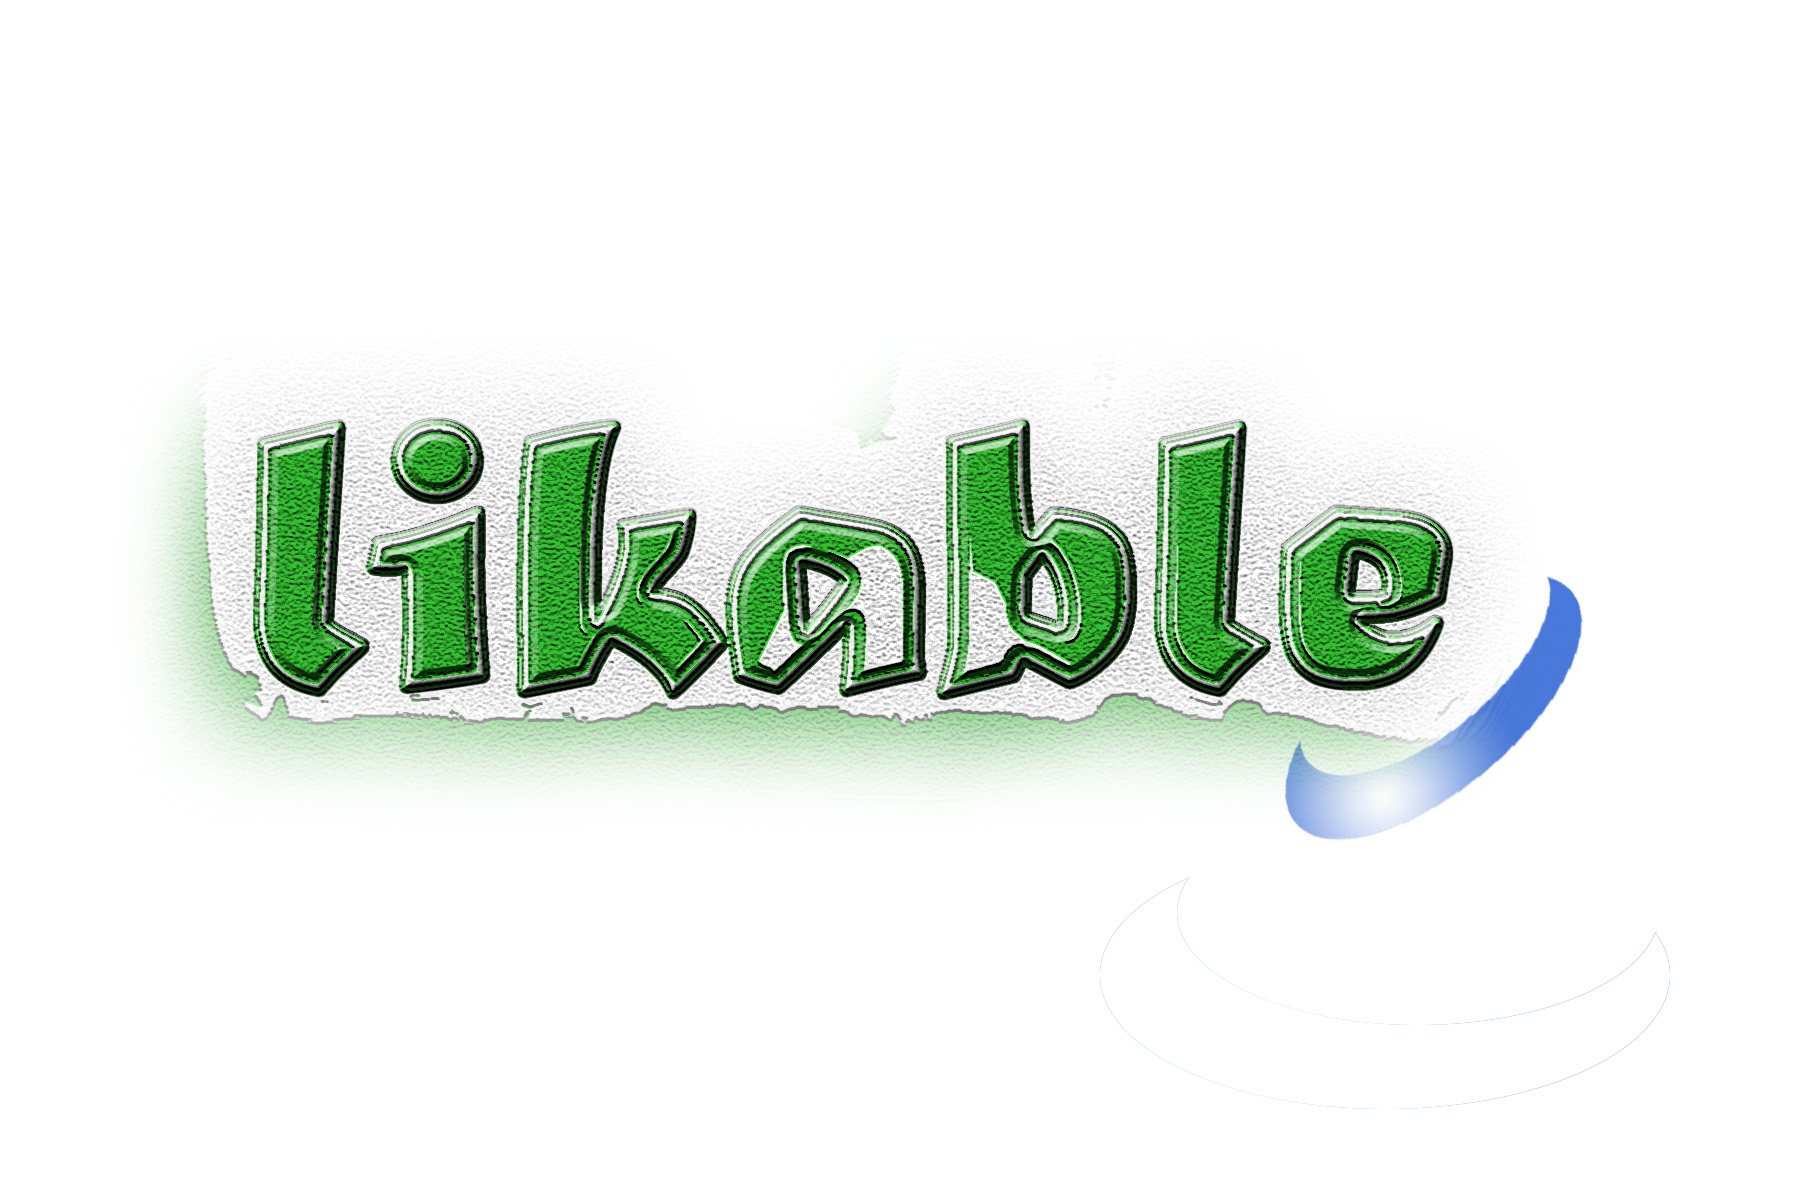 likable.com